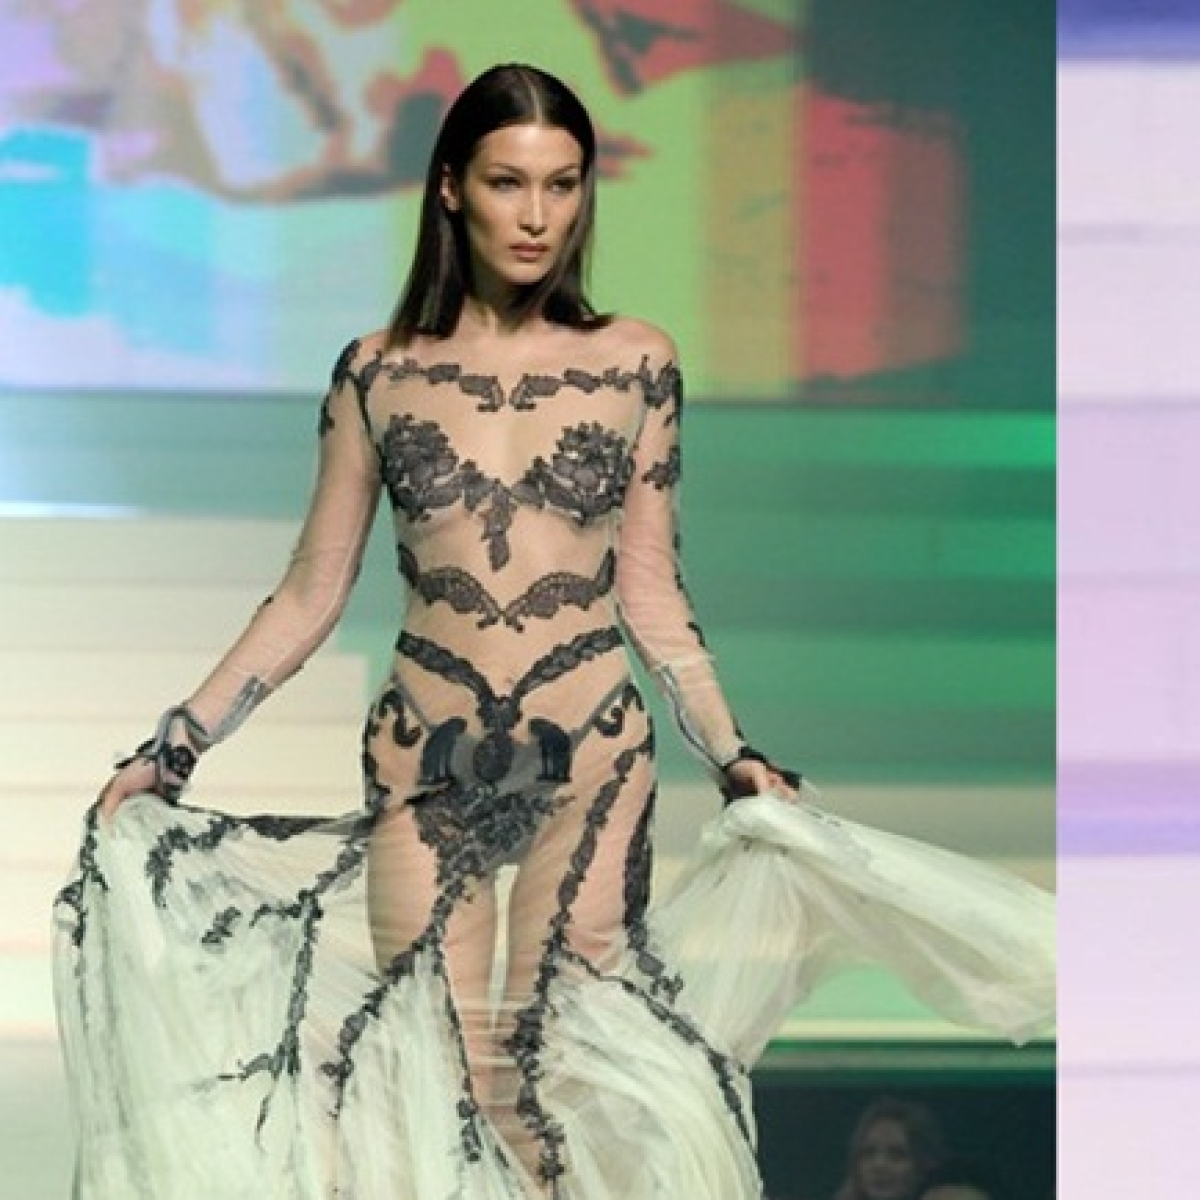 Gigi and Bella Hadid's sheer runway couture leaves little to the imagination